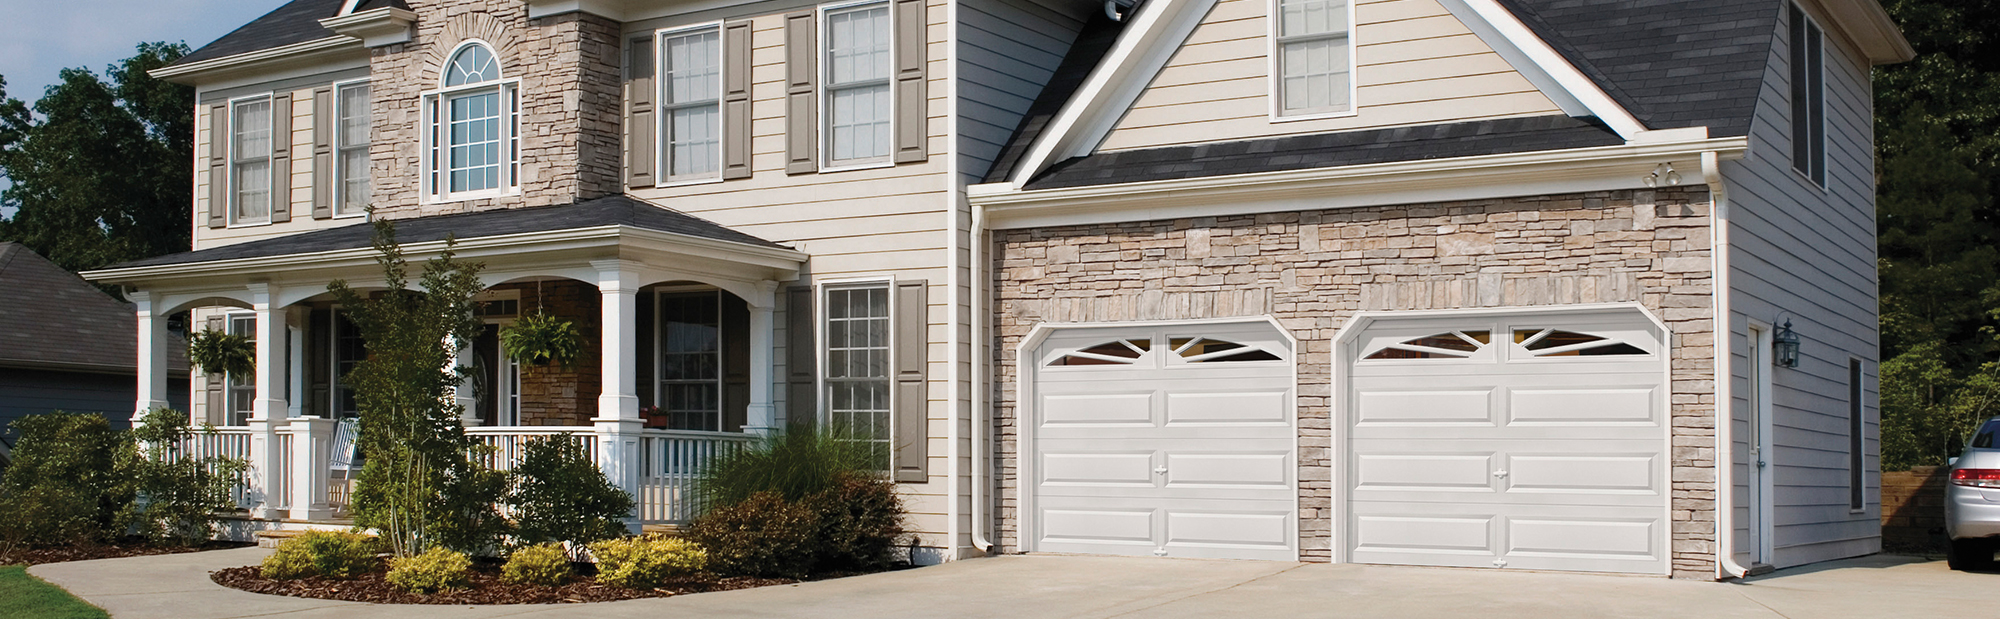 Federal way garage door repair service distribudoors for Garage door repair renton